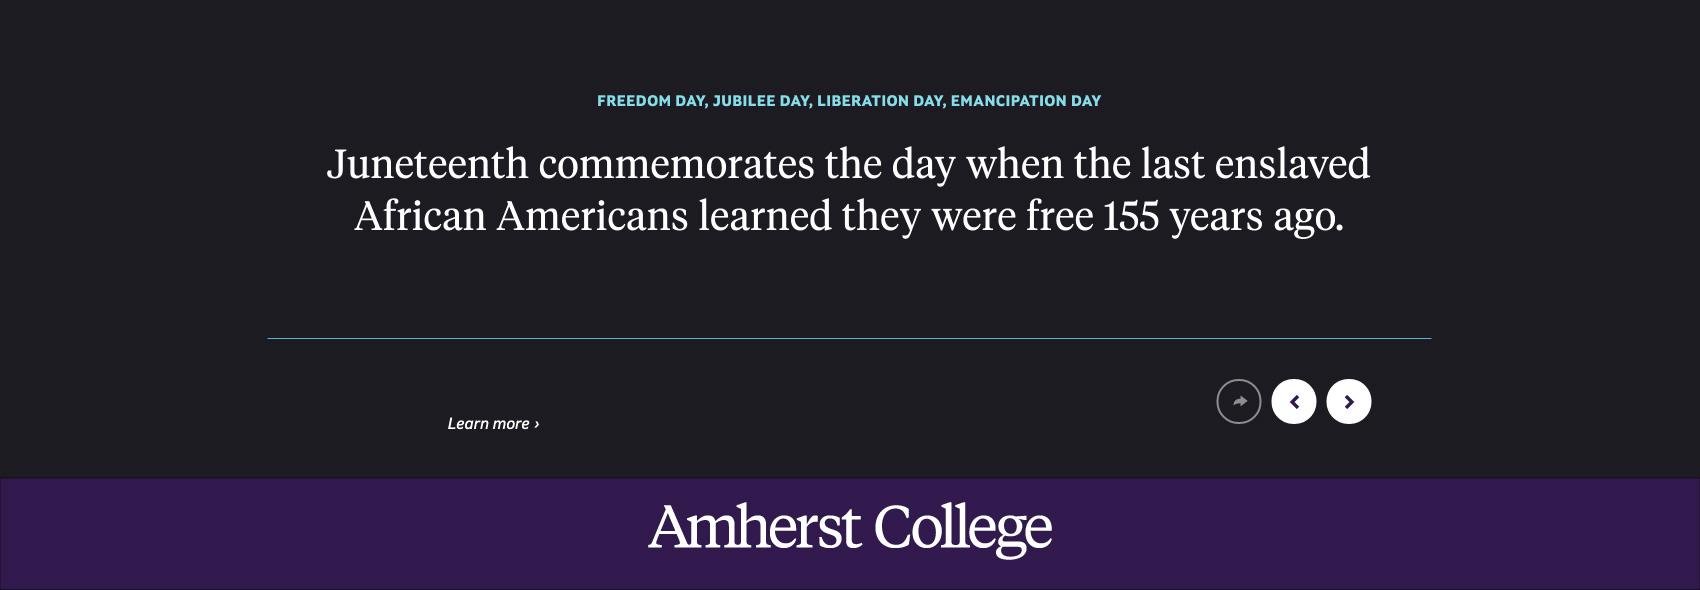 Juneteenth commemorates the day when the last enslaved African Americans learned they were free 155 years ago.